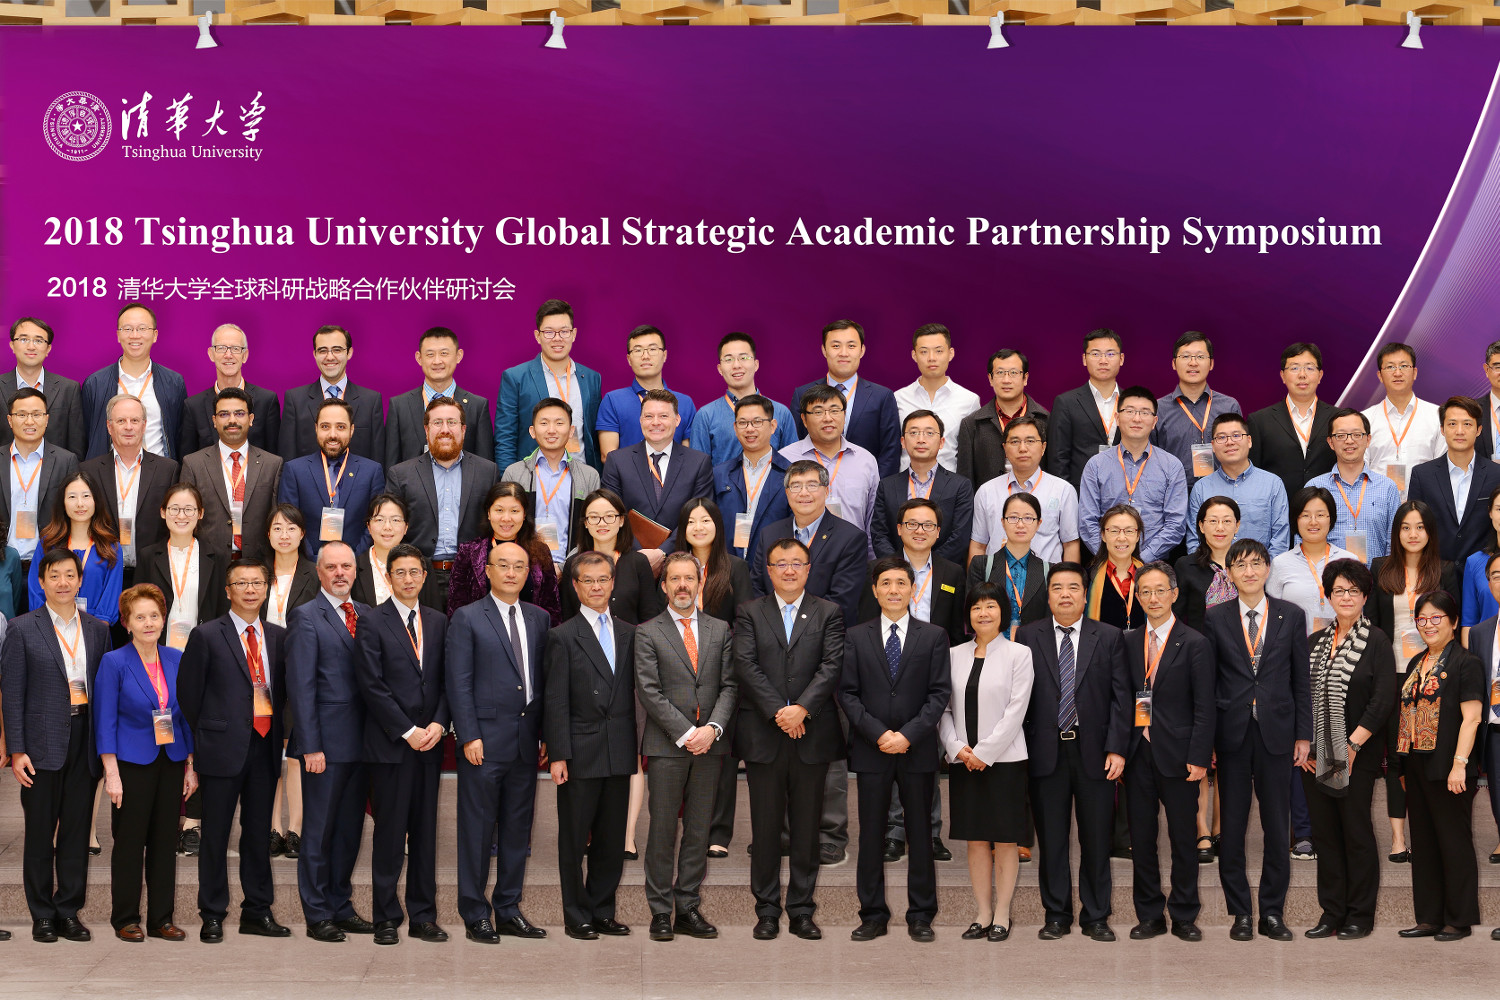 Участие в Международном Саммите «2018 Tsinghua University Global Strategic Academic Partnership Summit» Шэньчжэнь, Китай